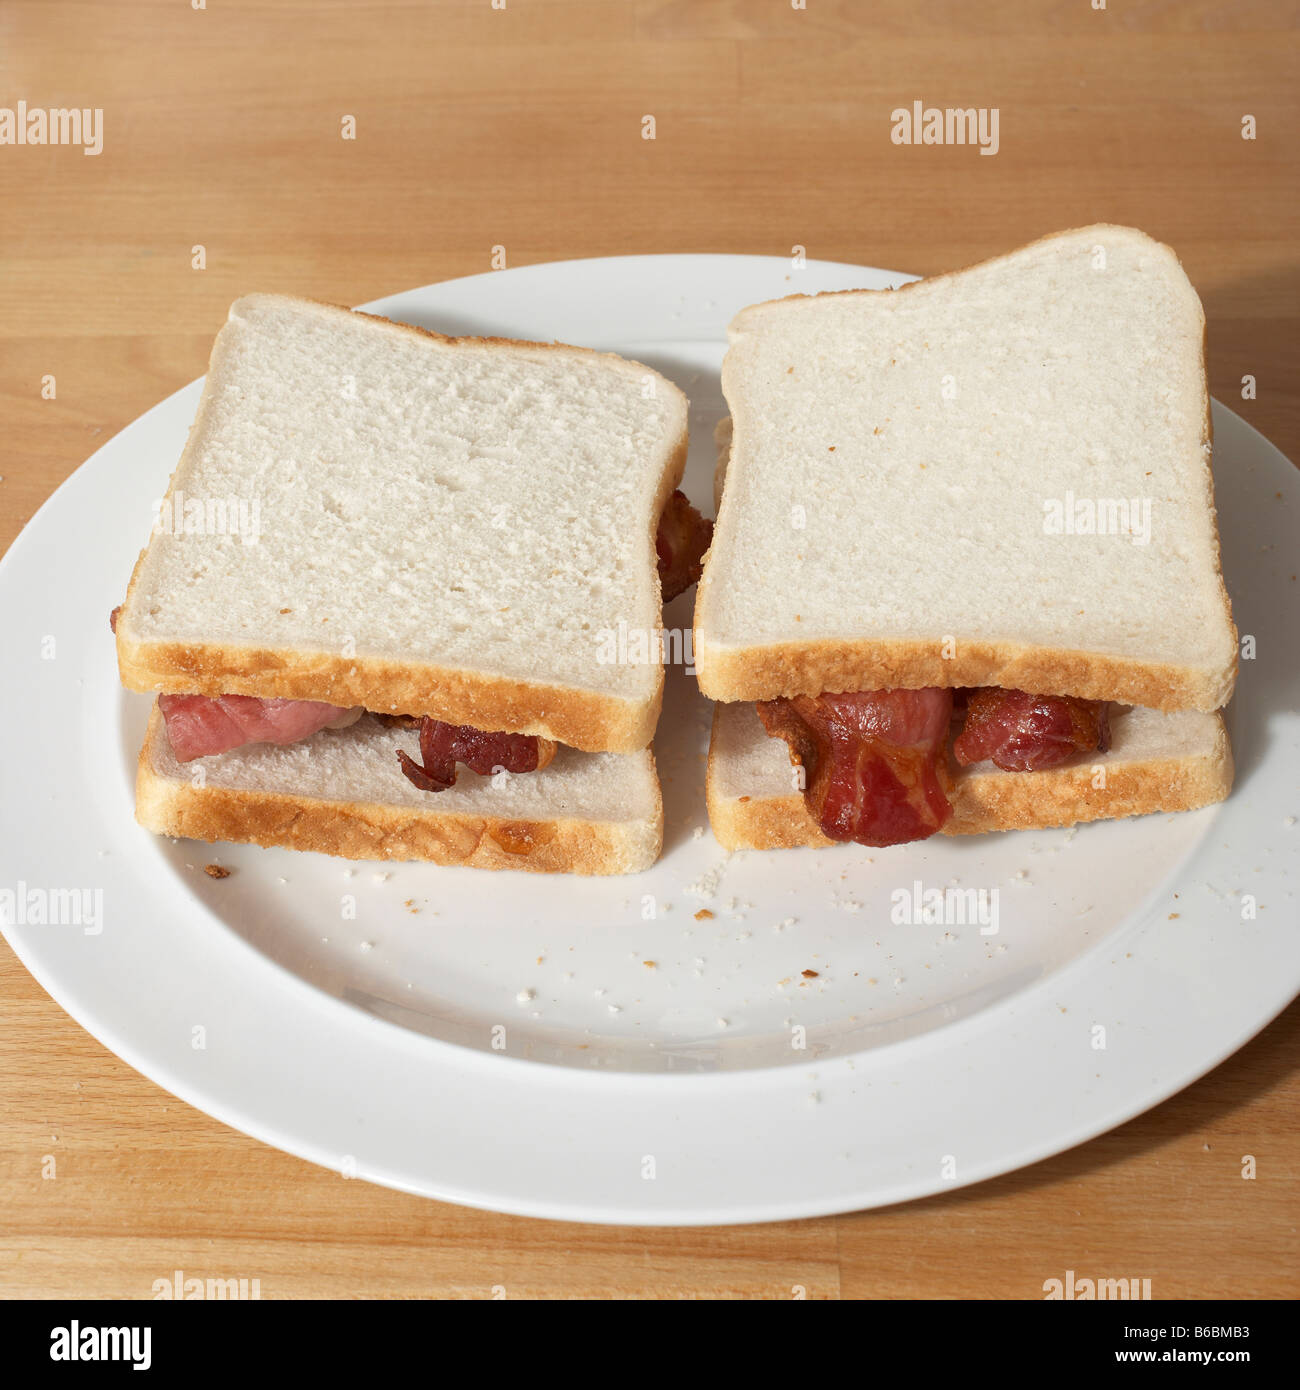 Bacon butty in white bread - Stock Image